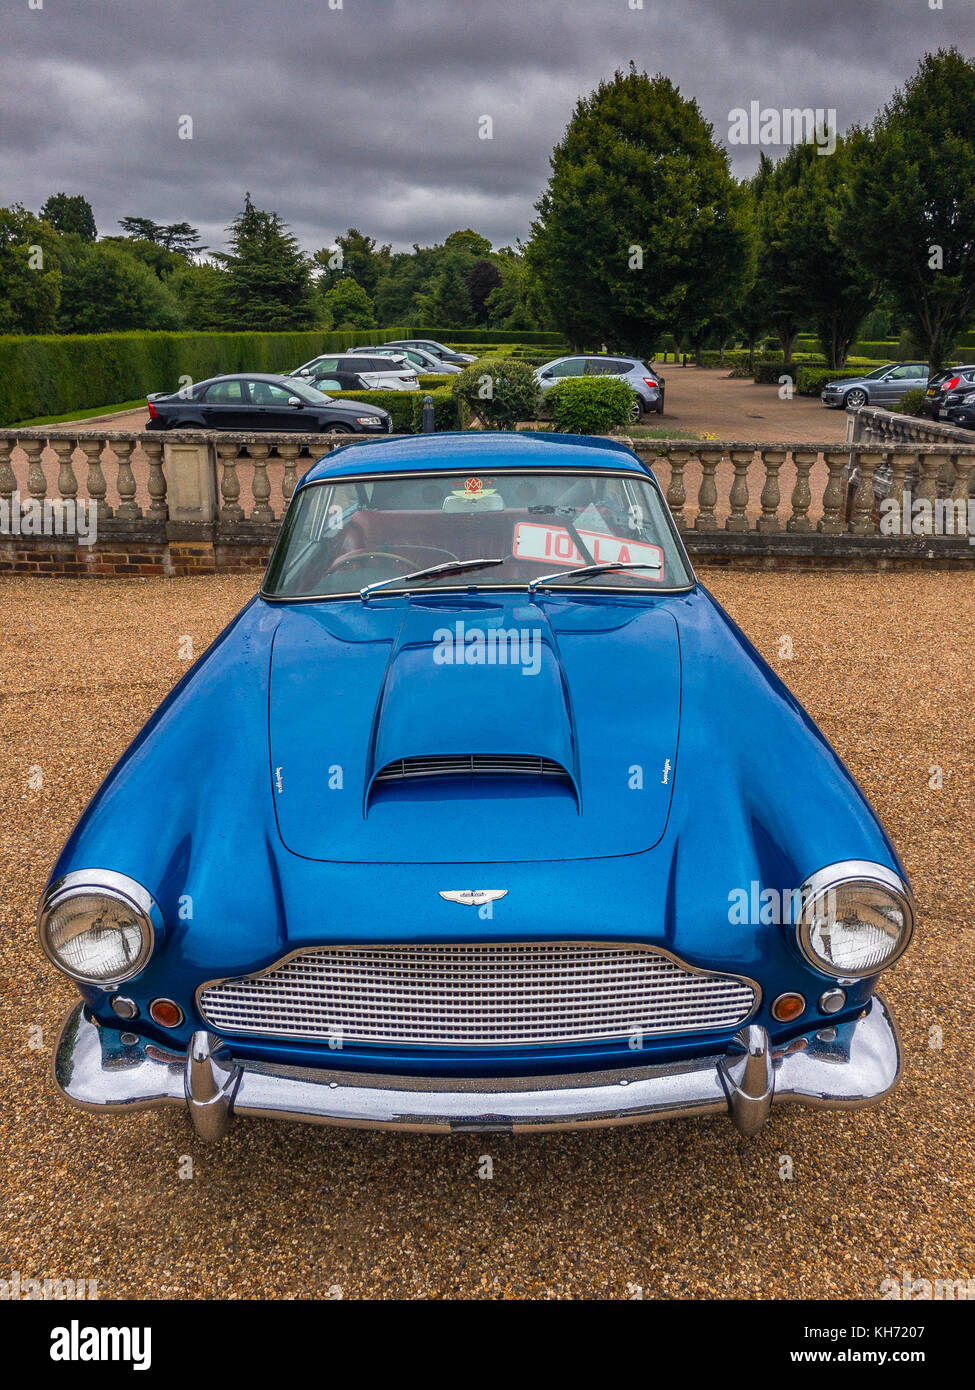 Aston Martin in Hedsor, England - Stock Image